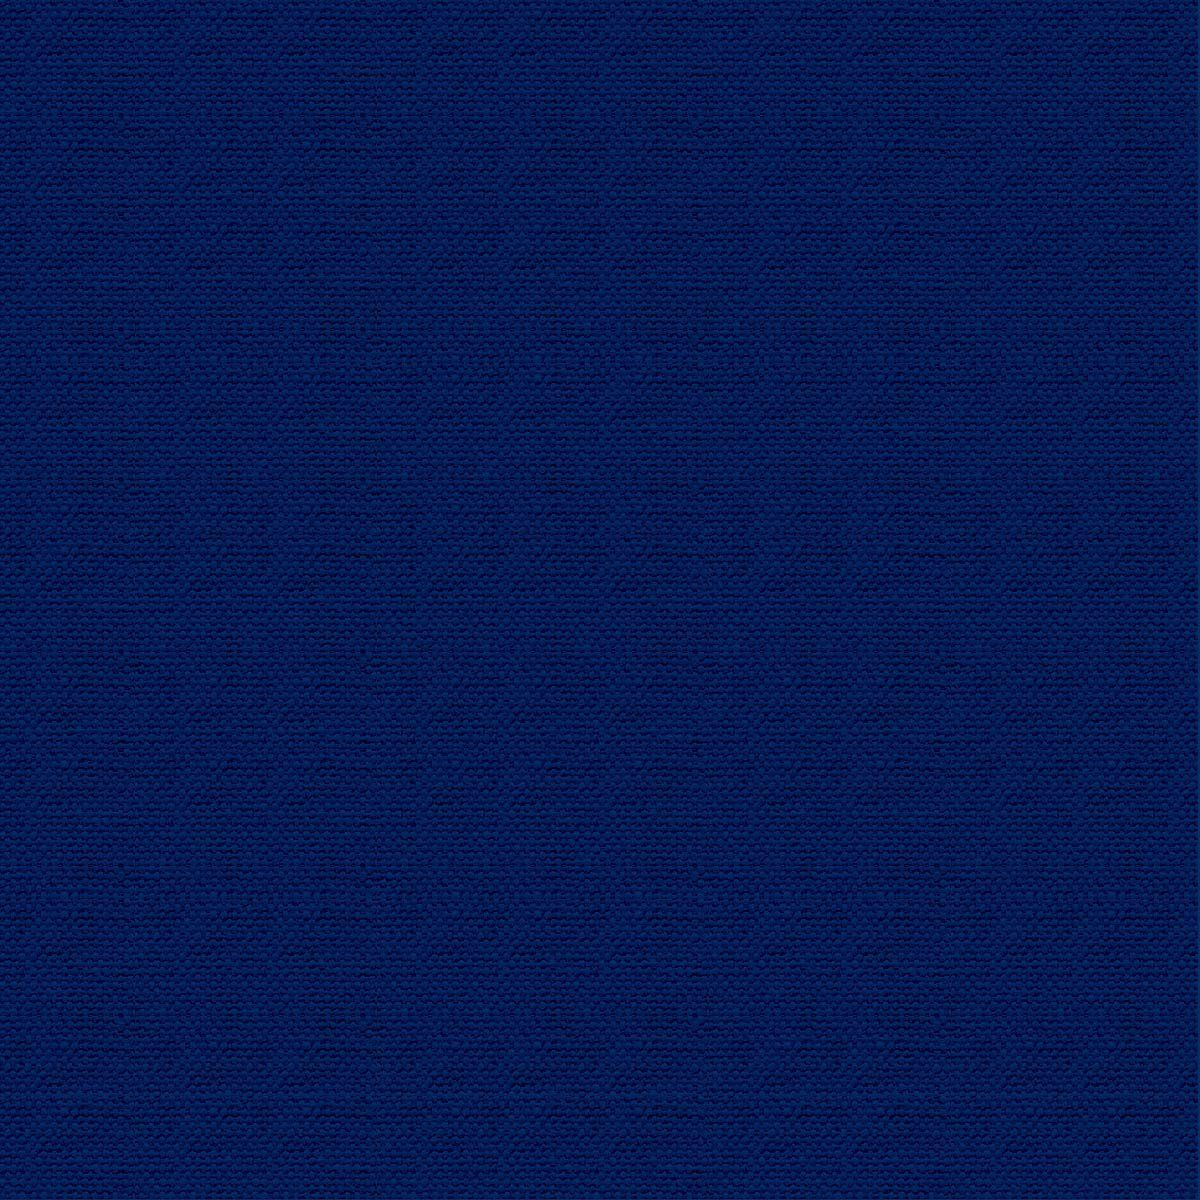 Navy Blue Navy Blue Color Swatch Gallery